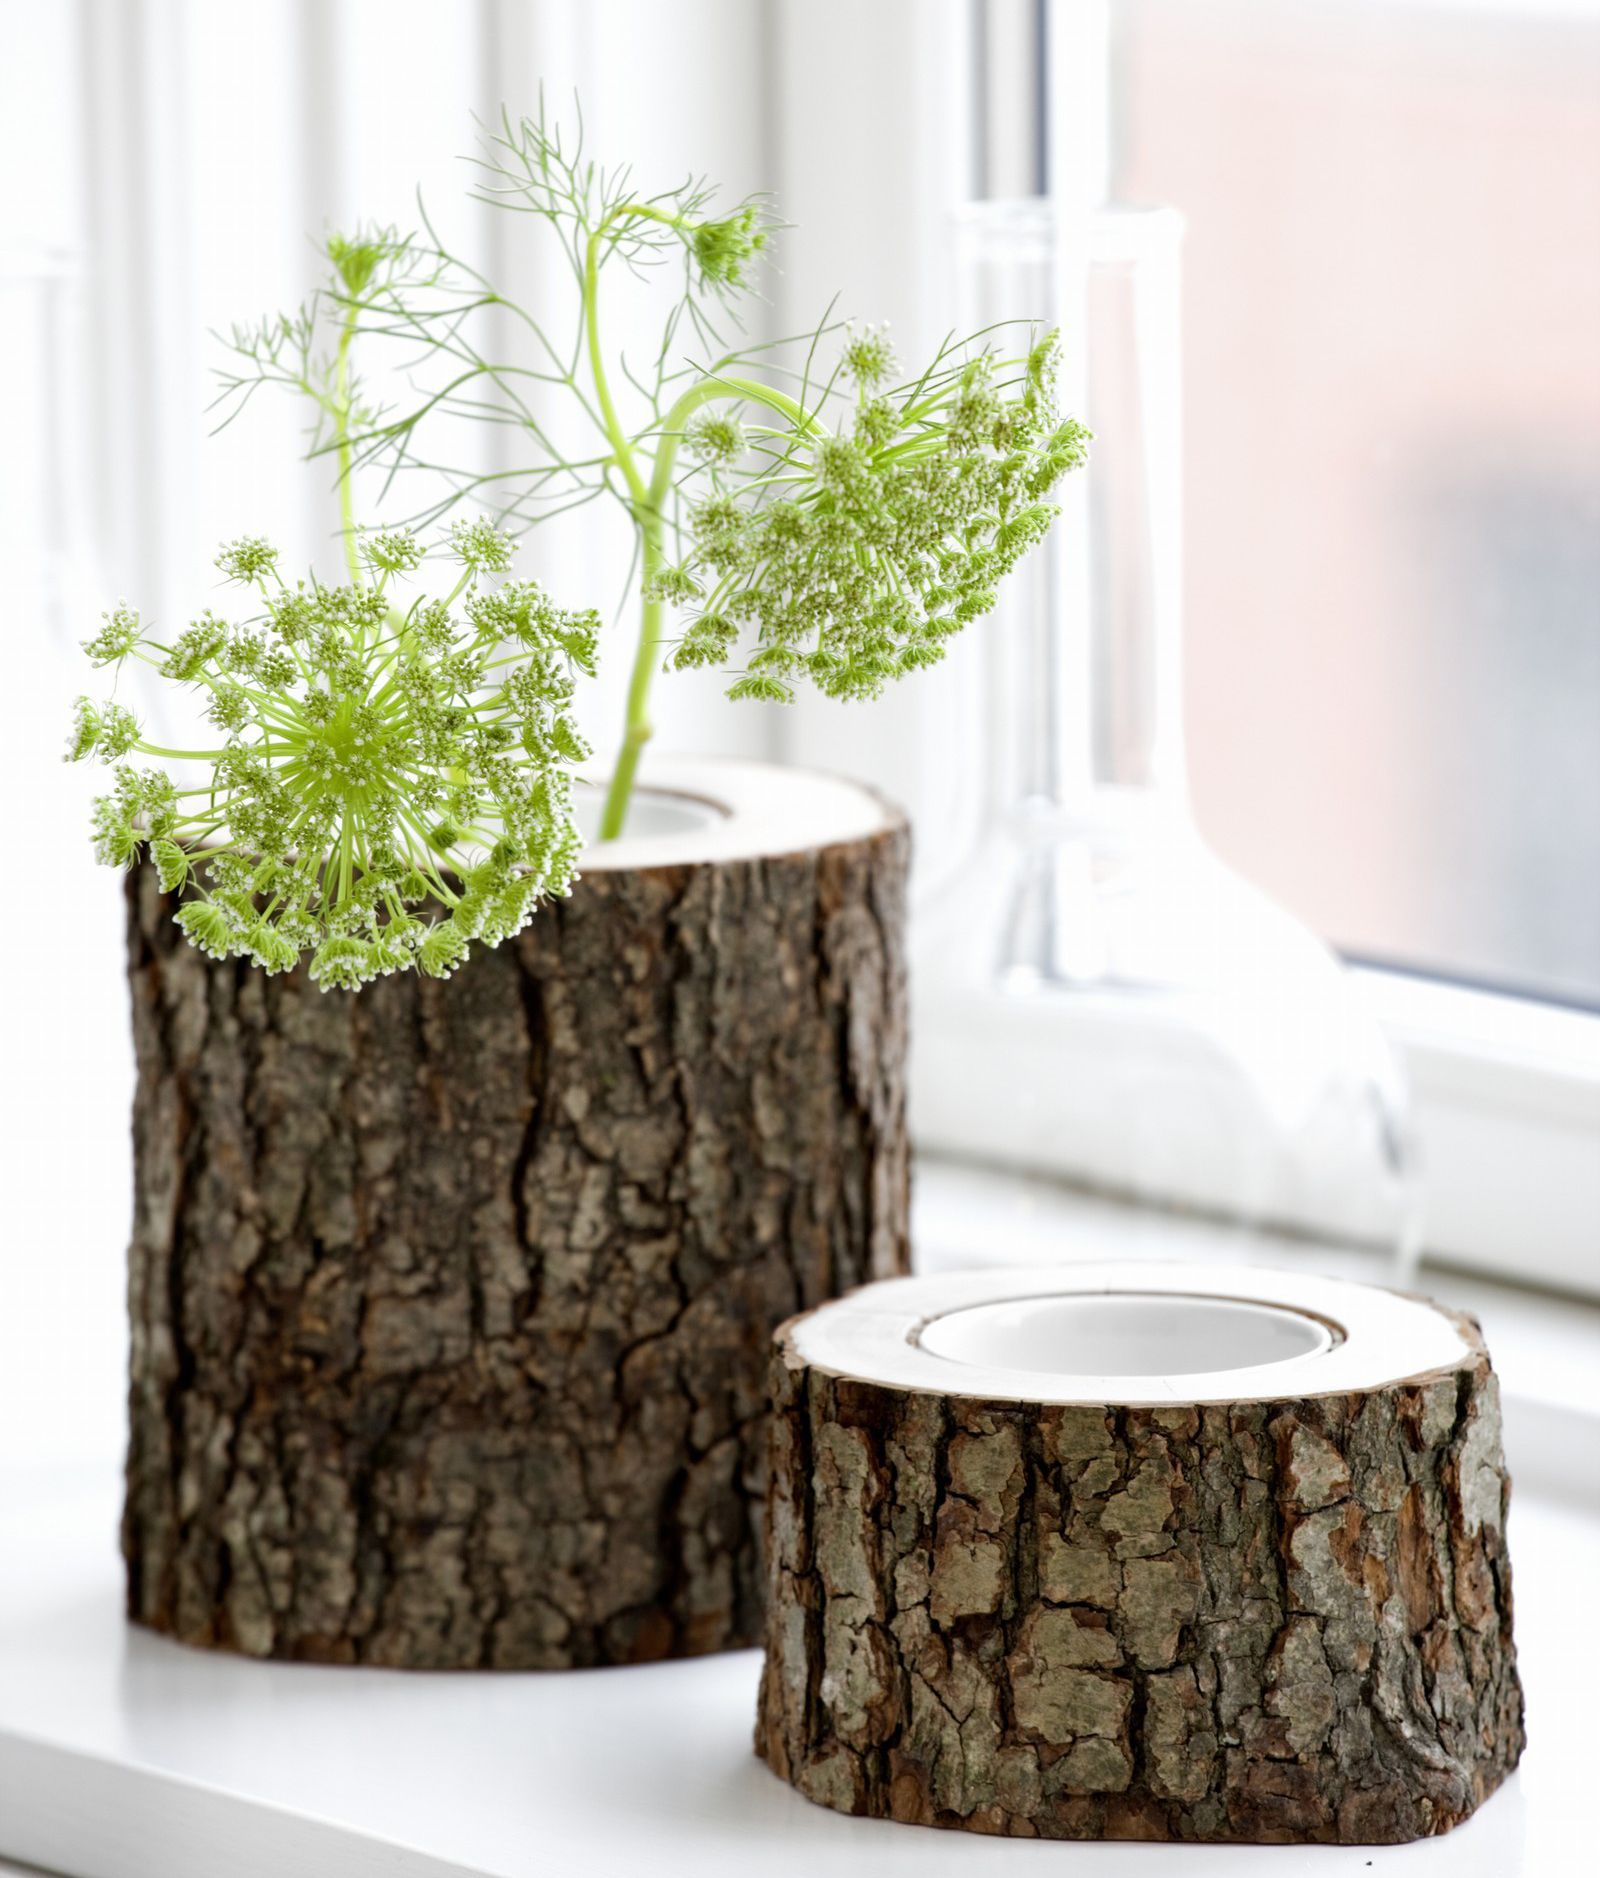 Tree stump vases this is cool could you make a tree stump tree stump vases this is cool could you make a tree stump reviewsmspy